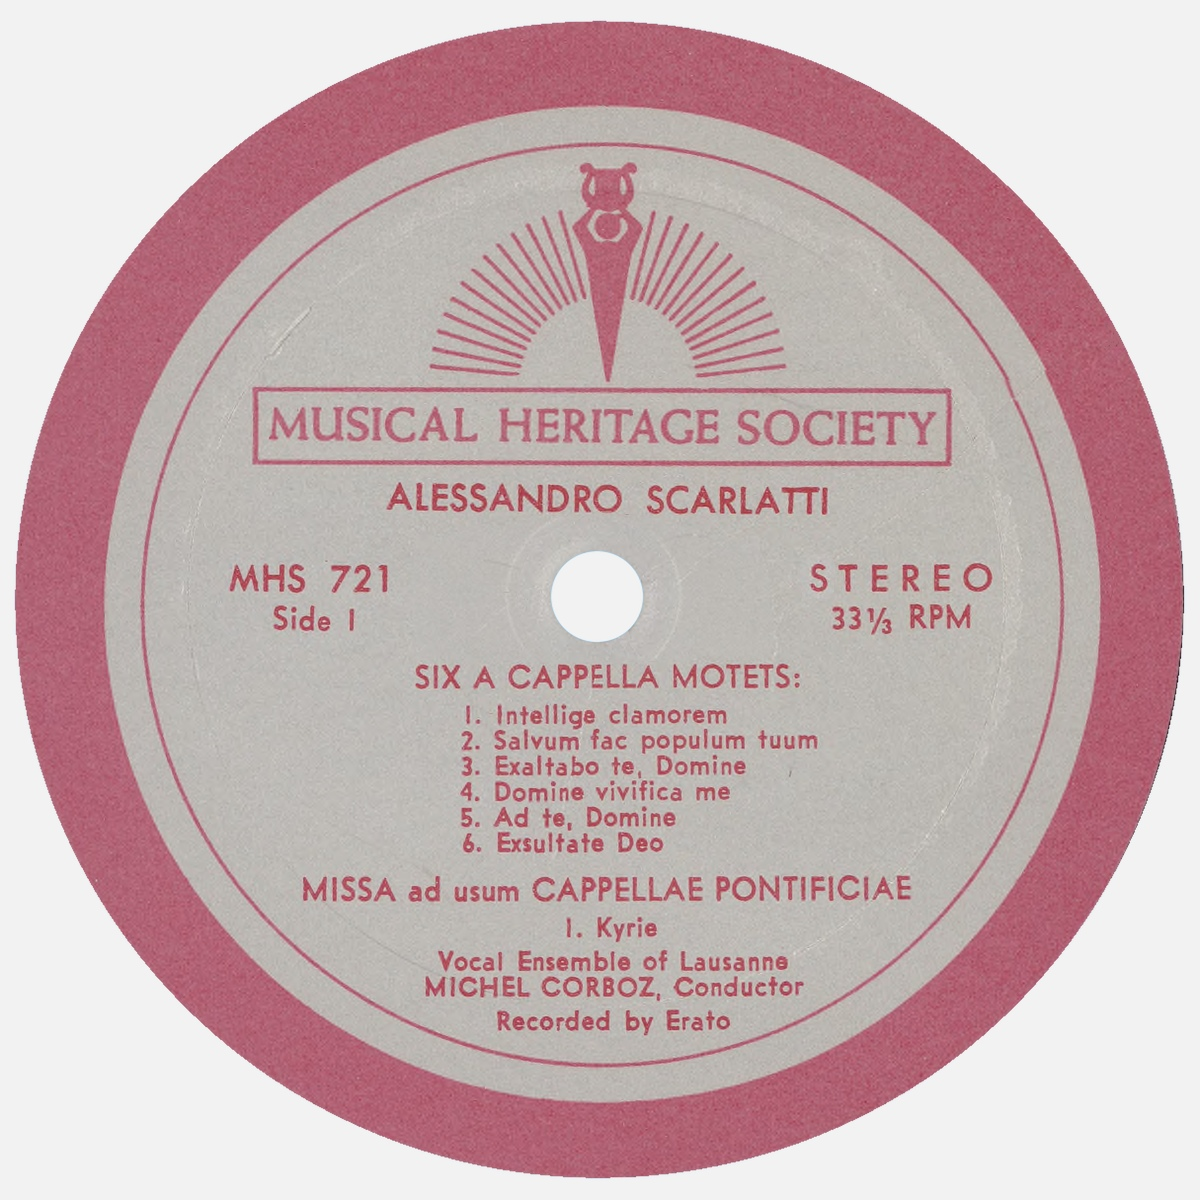 """Étiquette recto du disque """"The Musical Heritage Society Inc."""" MHS 721"""